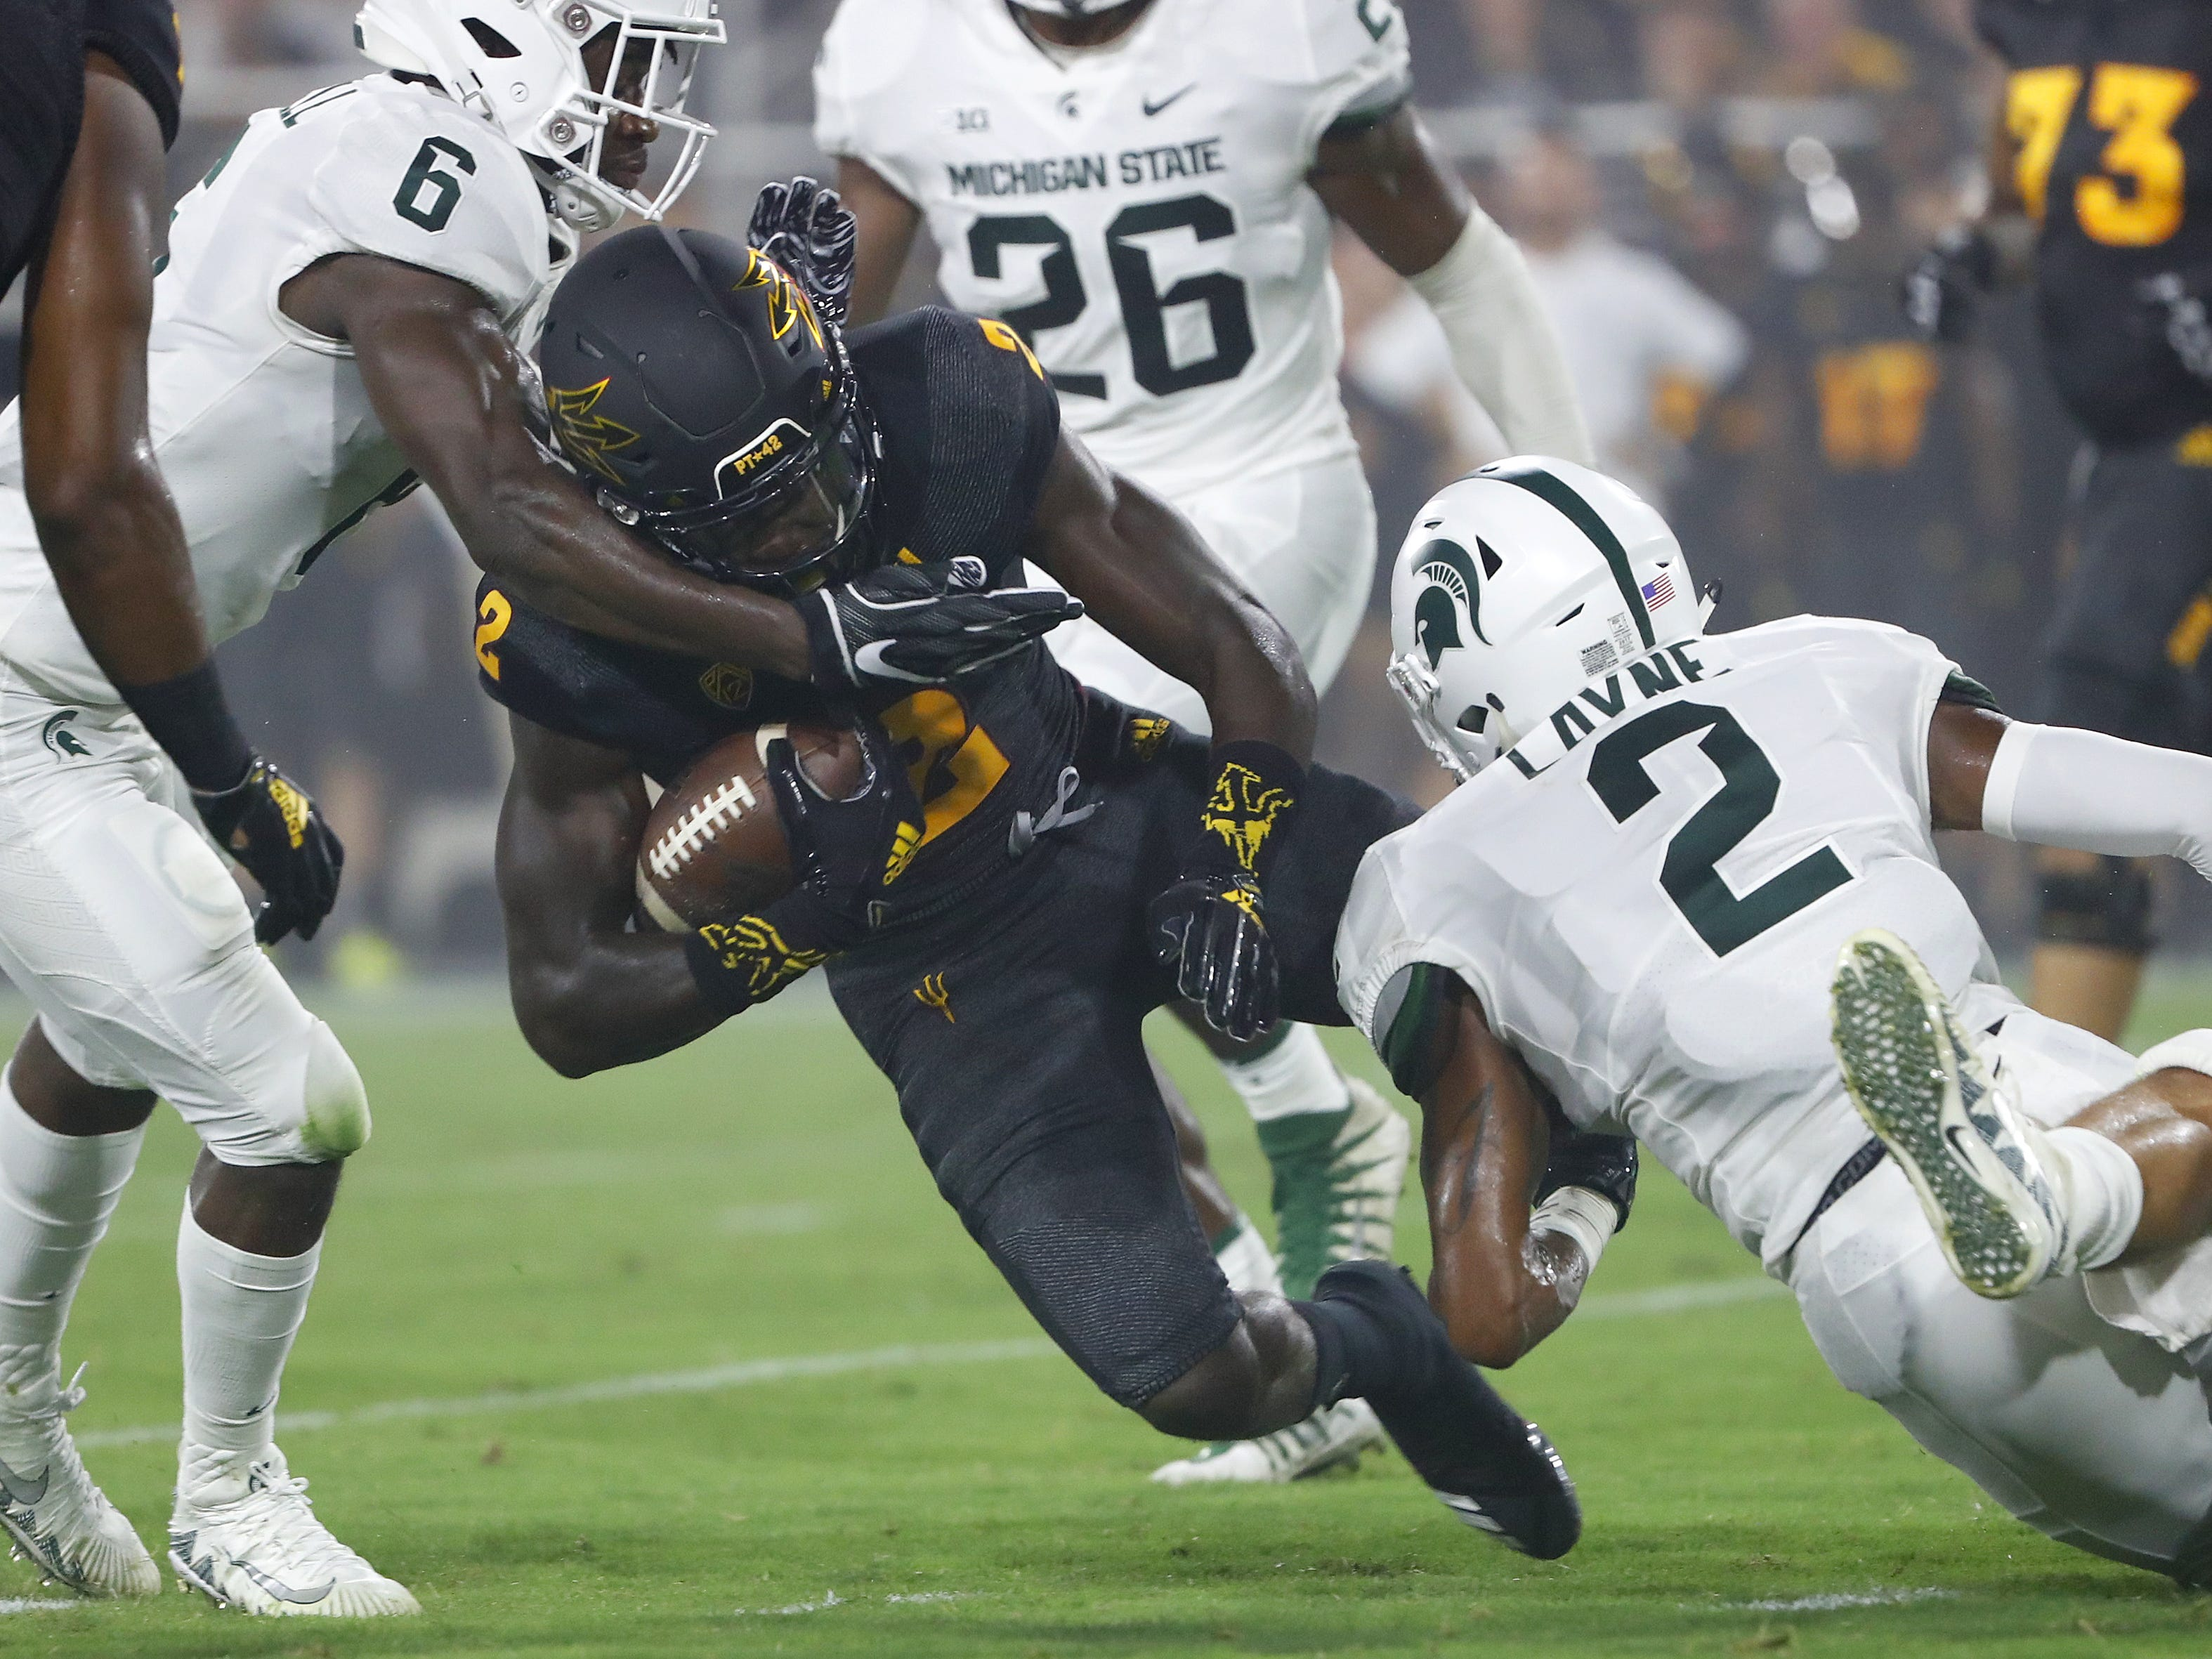 Michigan State's David Dowell (6) and Justin Layne (2) tackle Arizona State Sun Devils wide receiver Brandon Aiyuk (2) during the first quarter at Sun Devil Stadium in Tempe, Ariz. on Sept. 8, 2018.